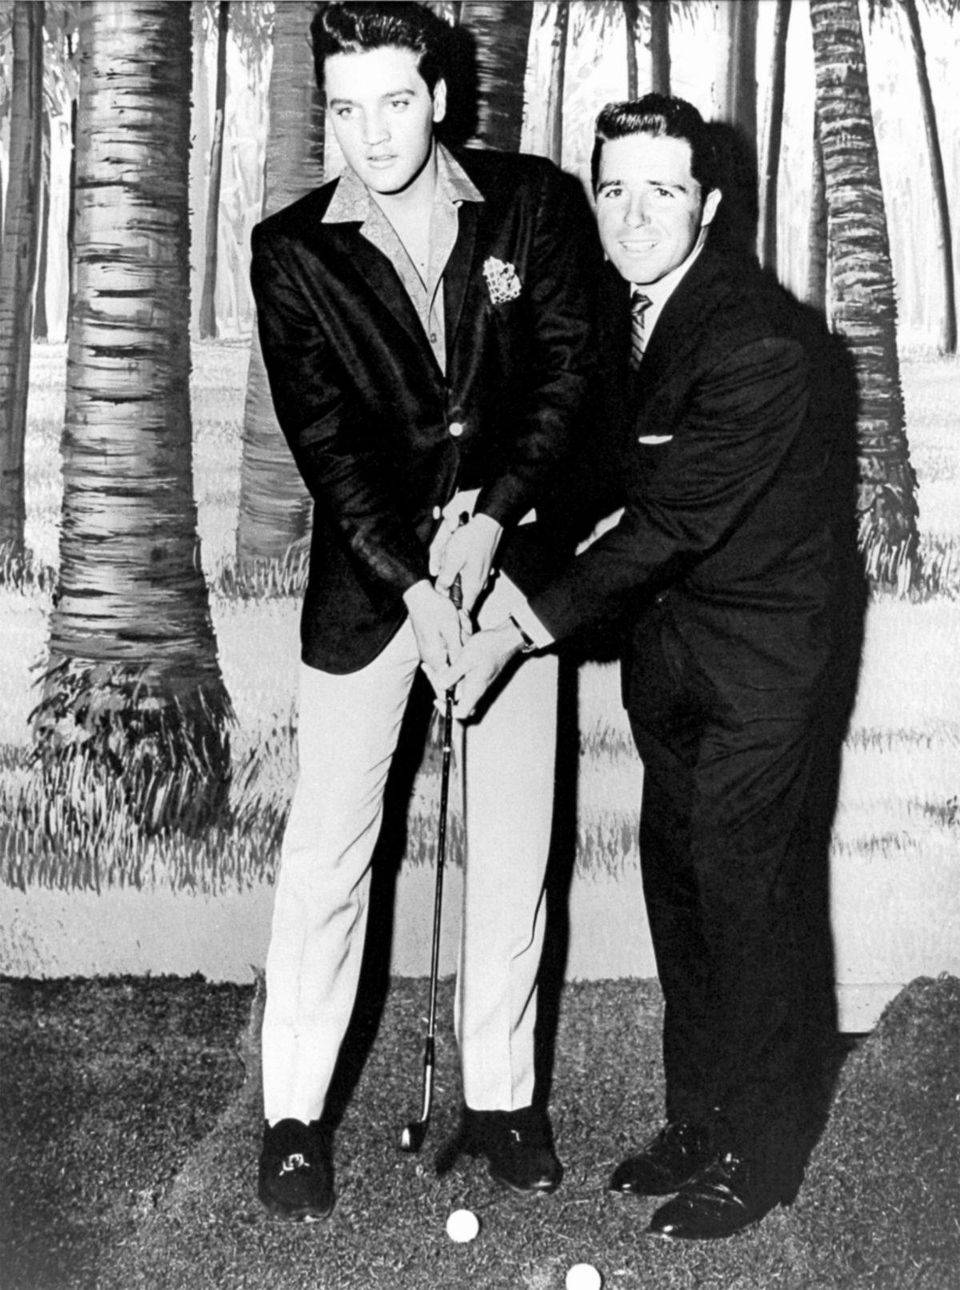 """Mr. Player gave Elvis a quick golf lesson, urging Elvis to use his hips during his swing. Elvis's response, """"The hips, Gary? You're talking to the right man!""""  IMAGE COURTESY OF BLACK KNIGHT ARCHIVES"""